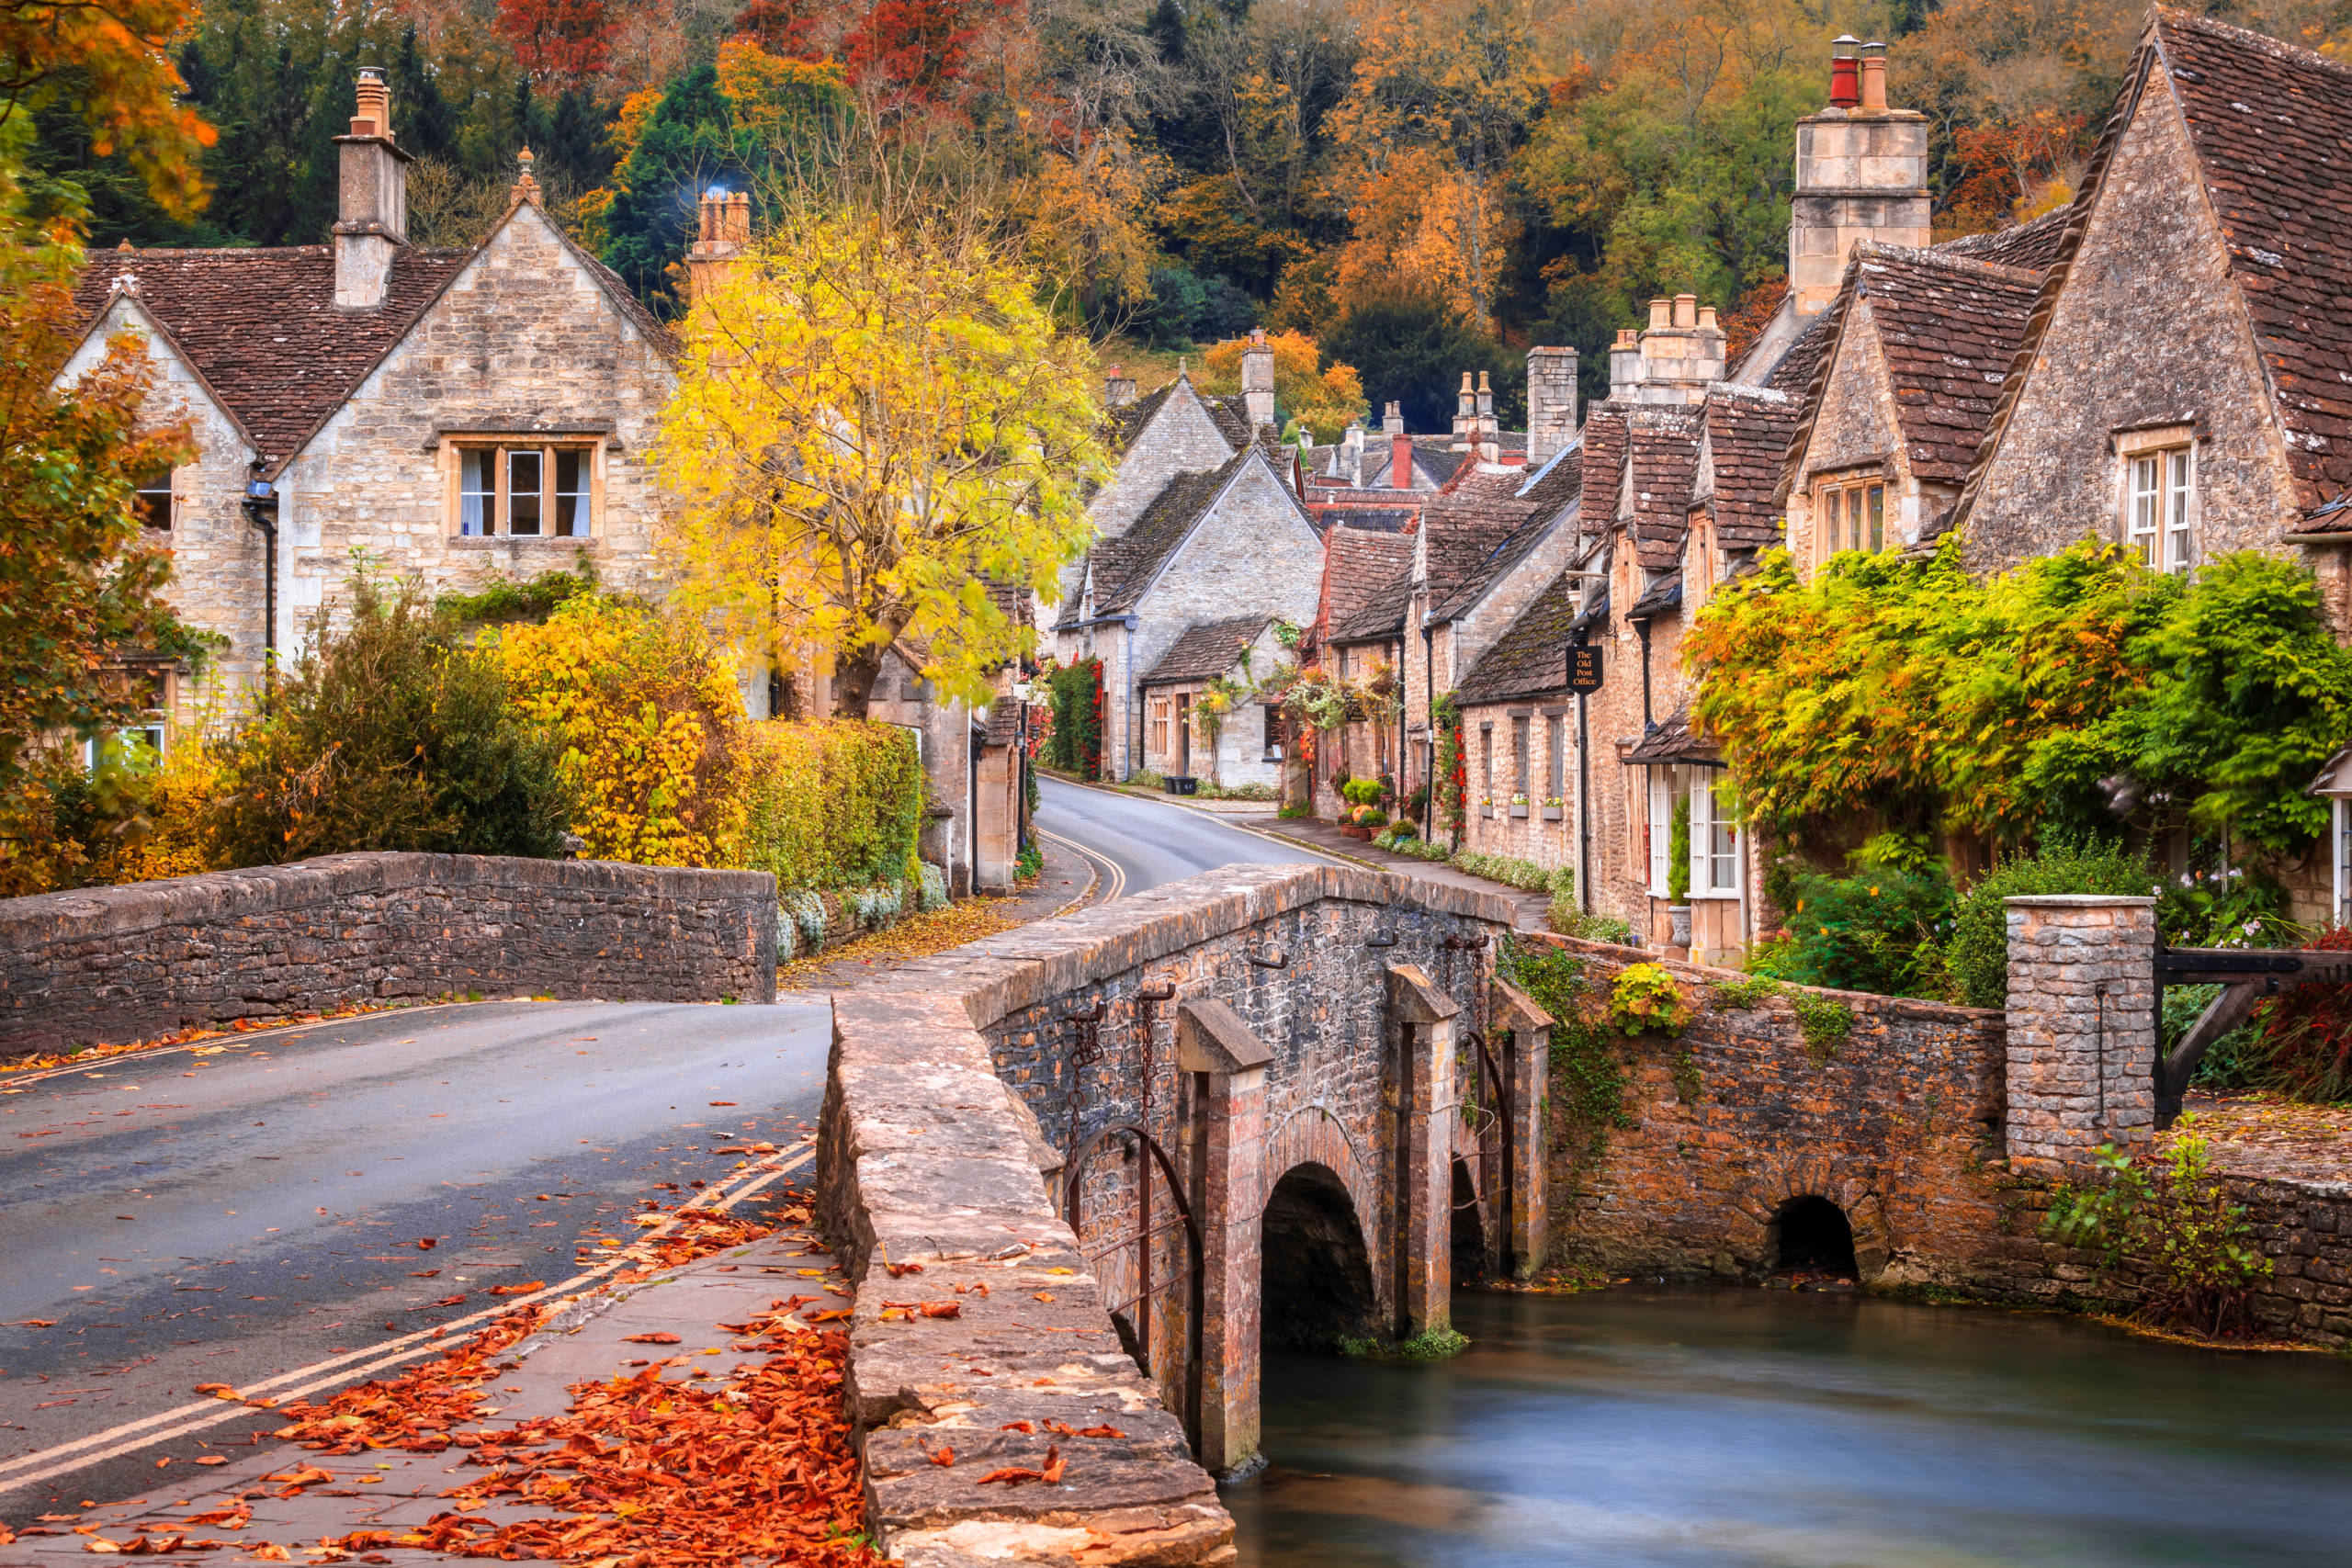 Castle Combe in Wiltshire. (Photo by joe daniel price/Getty Images)